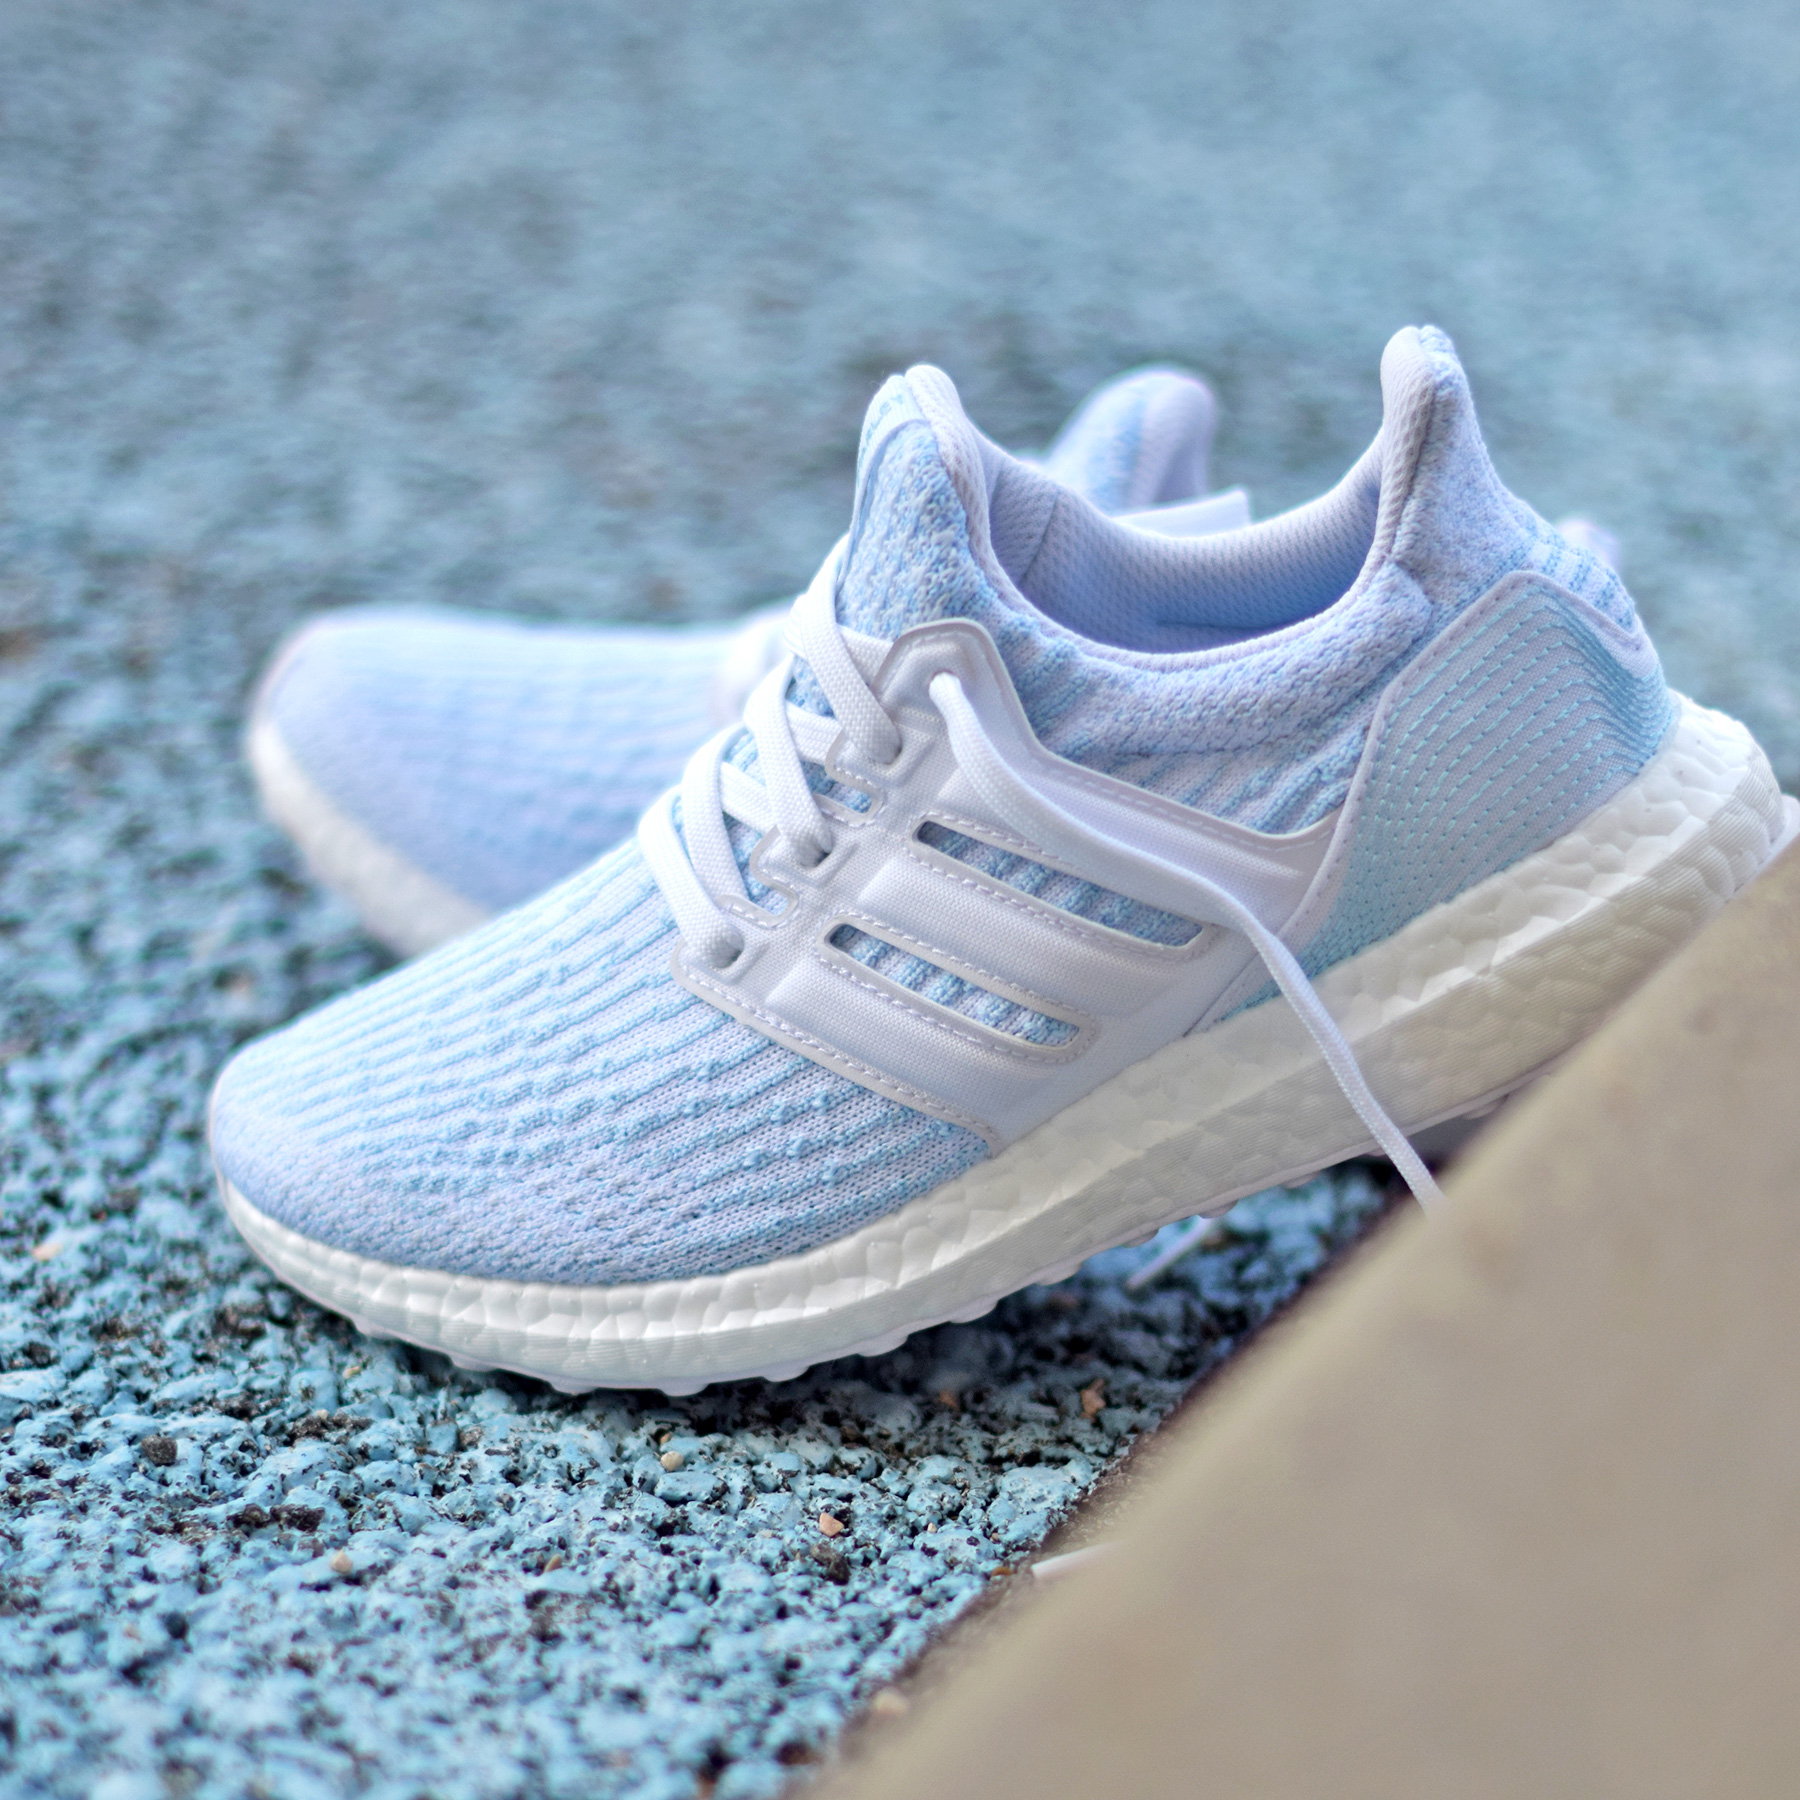 25c660313 adidas Ultra Boost Parley White Ice Blue - Sneakers.fr